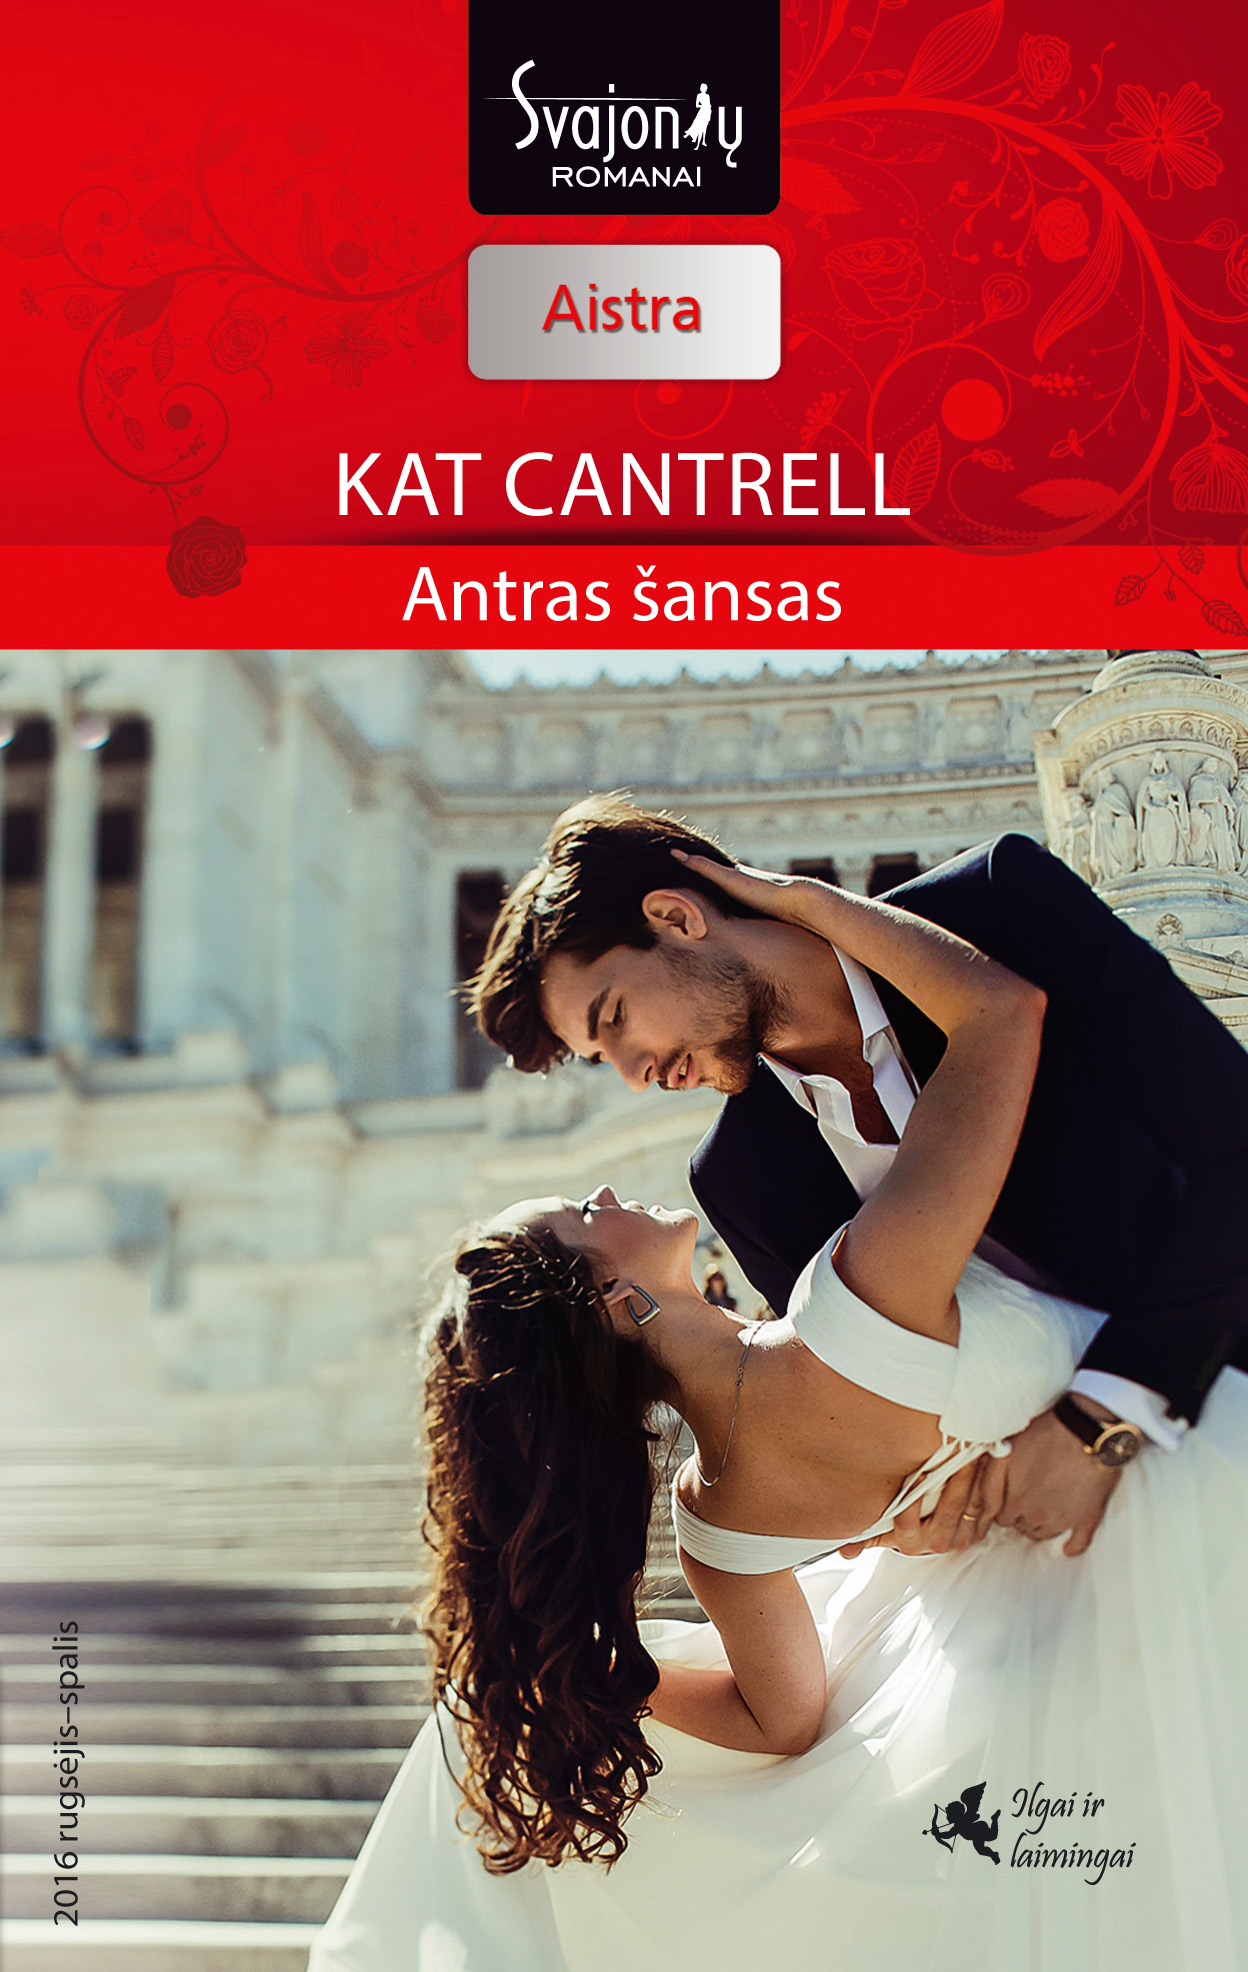 Kat Cantrell Antras šansas pro svet light mini par led 312 ir